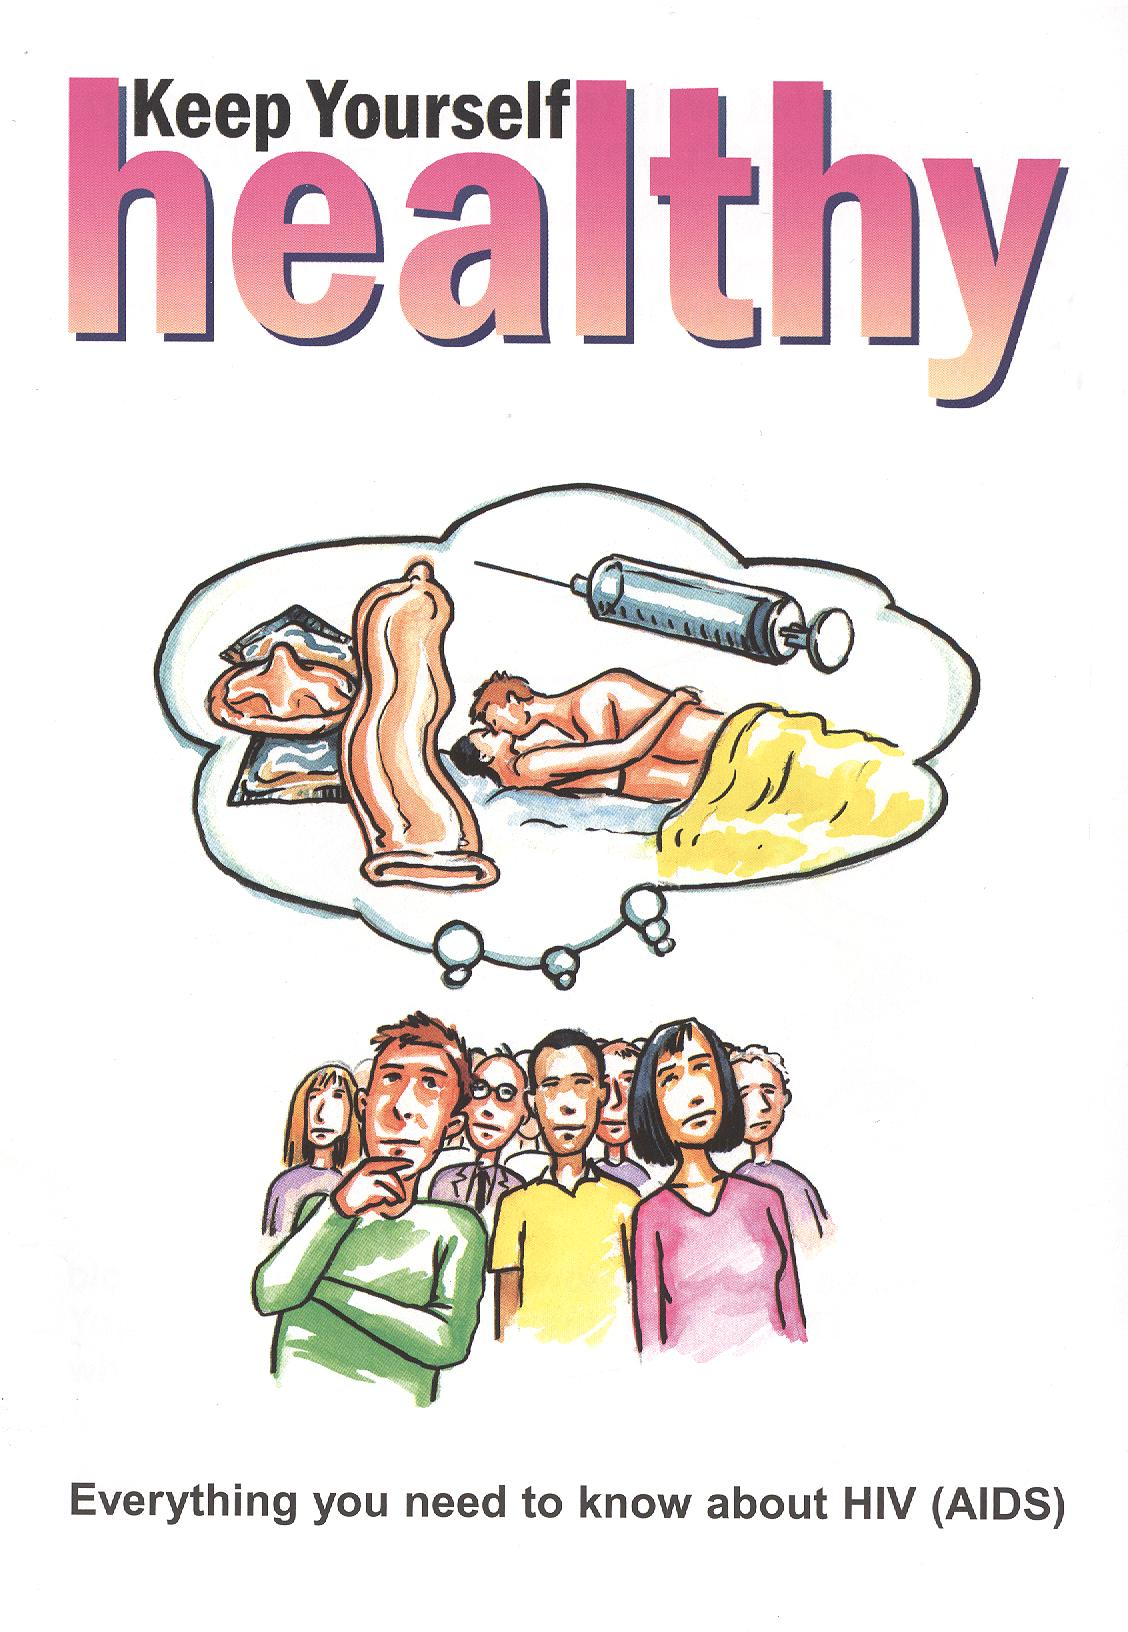 how to keep yourself healthy essay